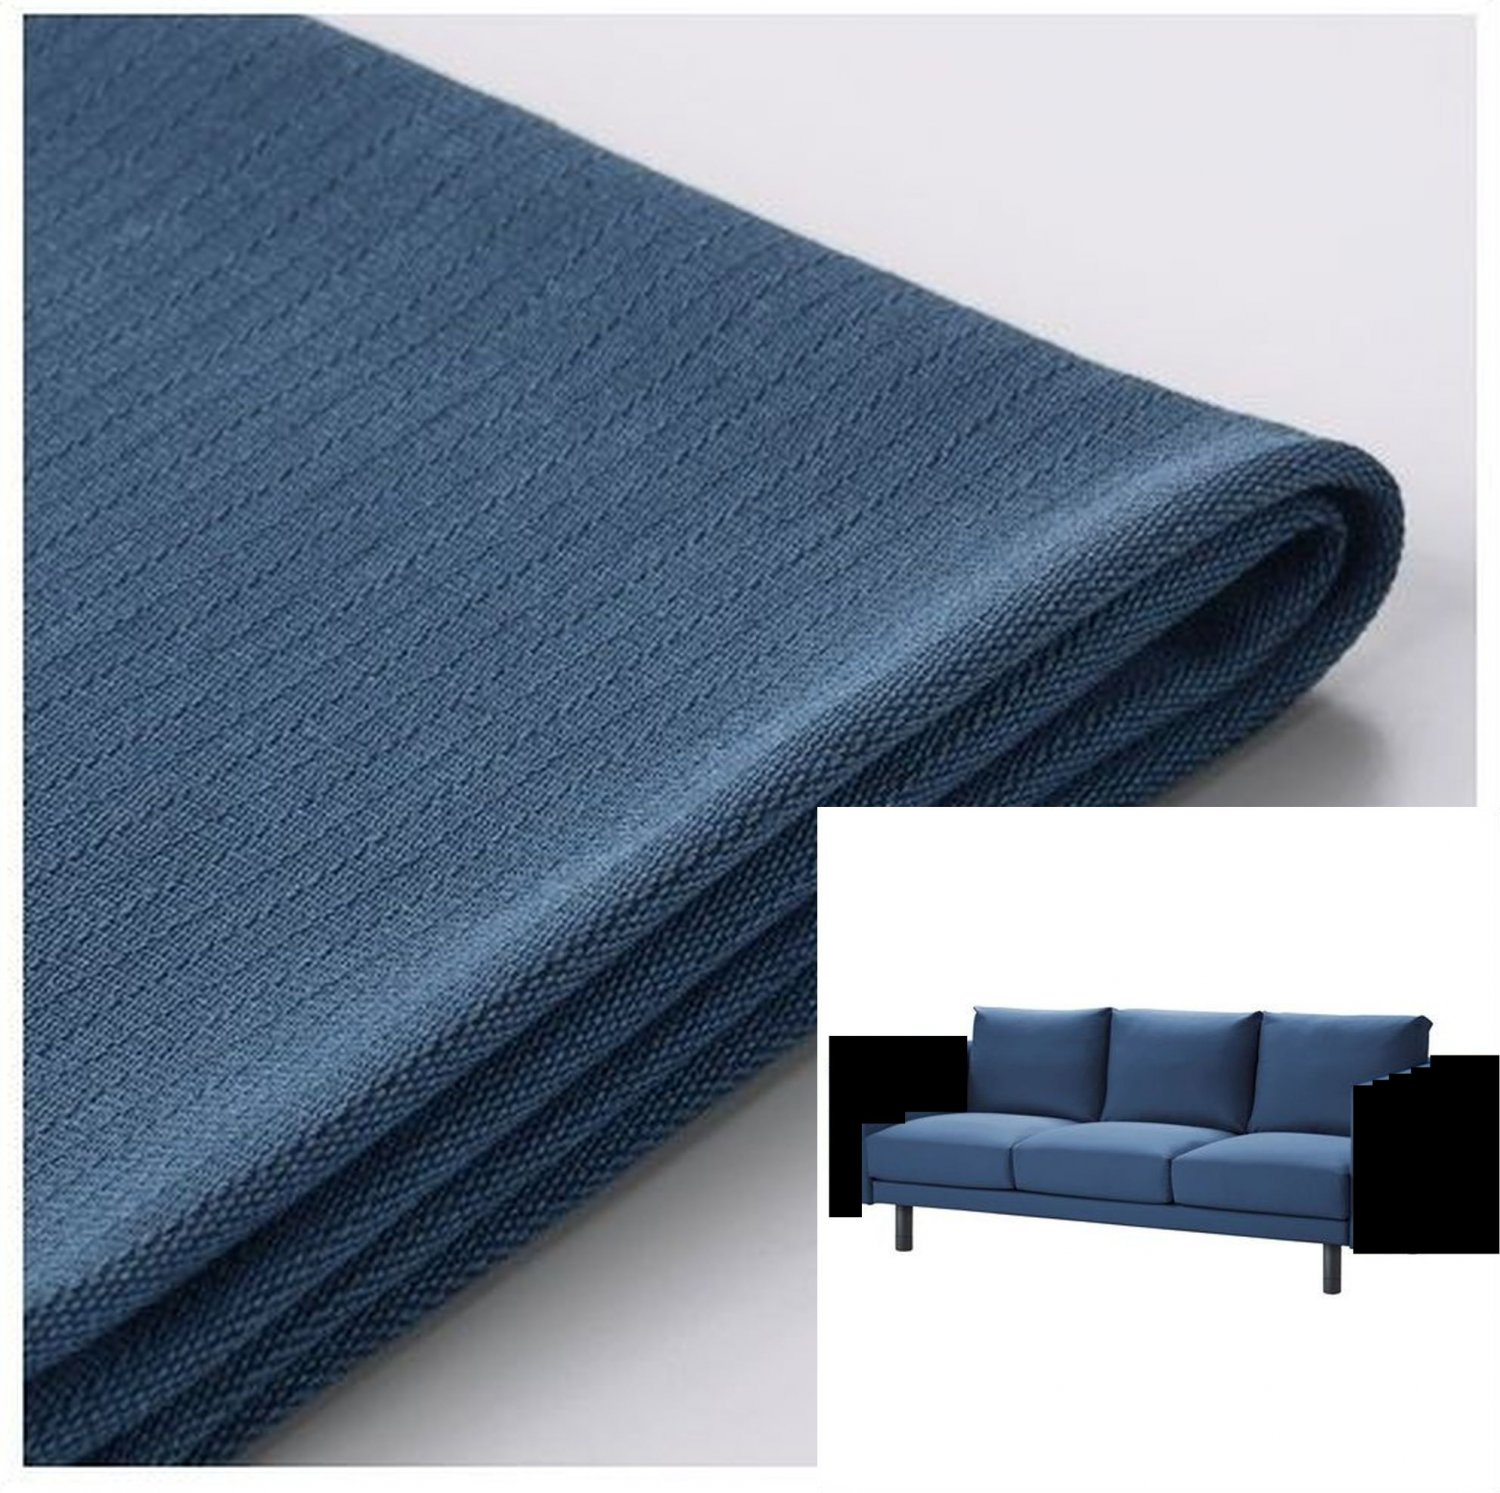 ikea norsborg 3 seat sofa section slipcover cover edum dark blue no arm covers. Black Bedroom Furniture Sets. Home Design Ideas